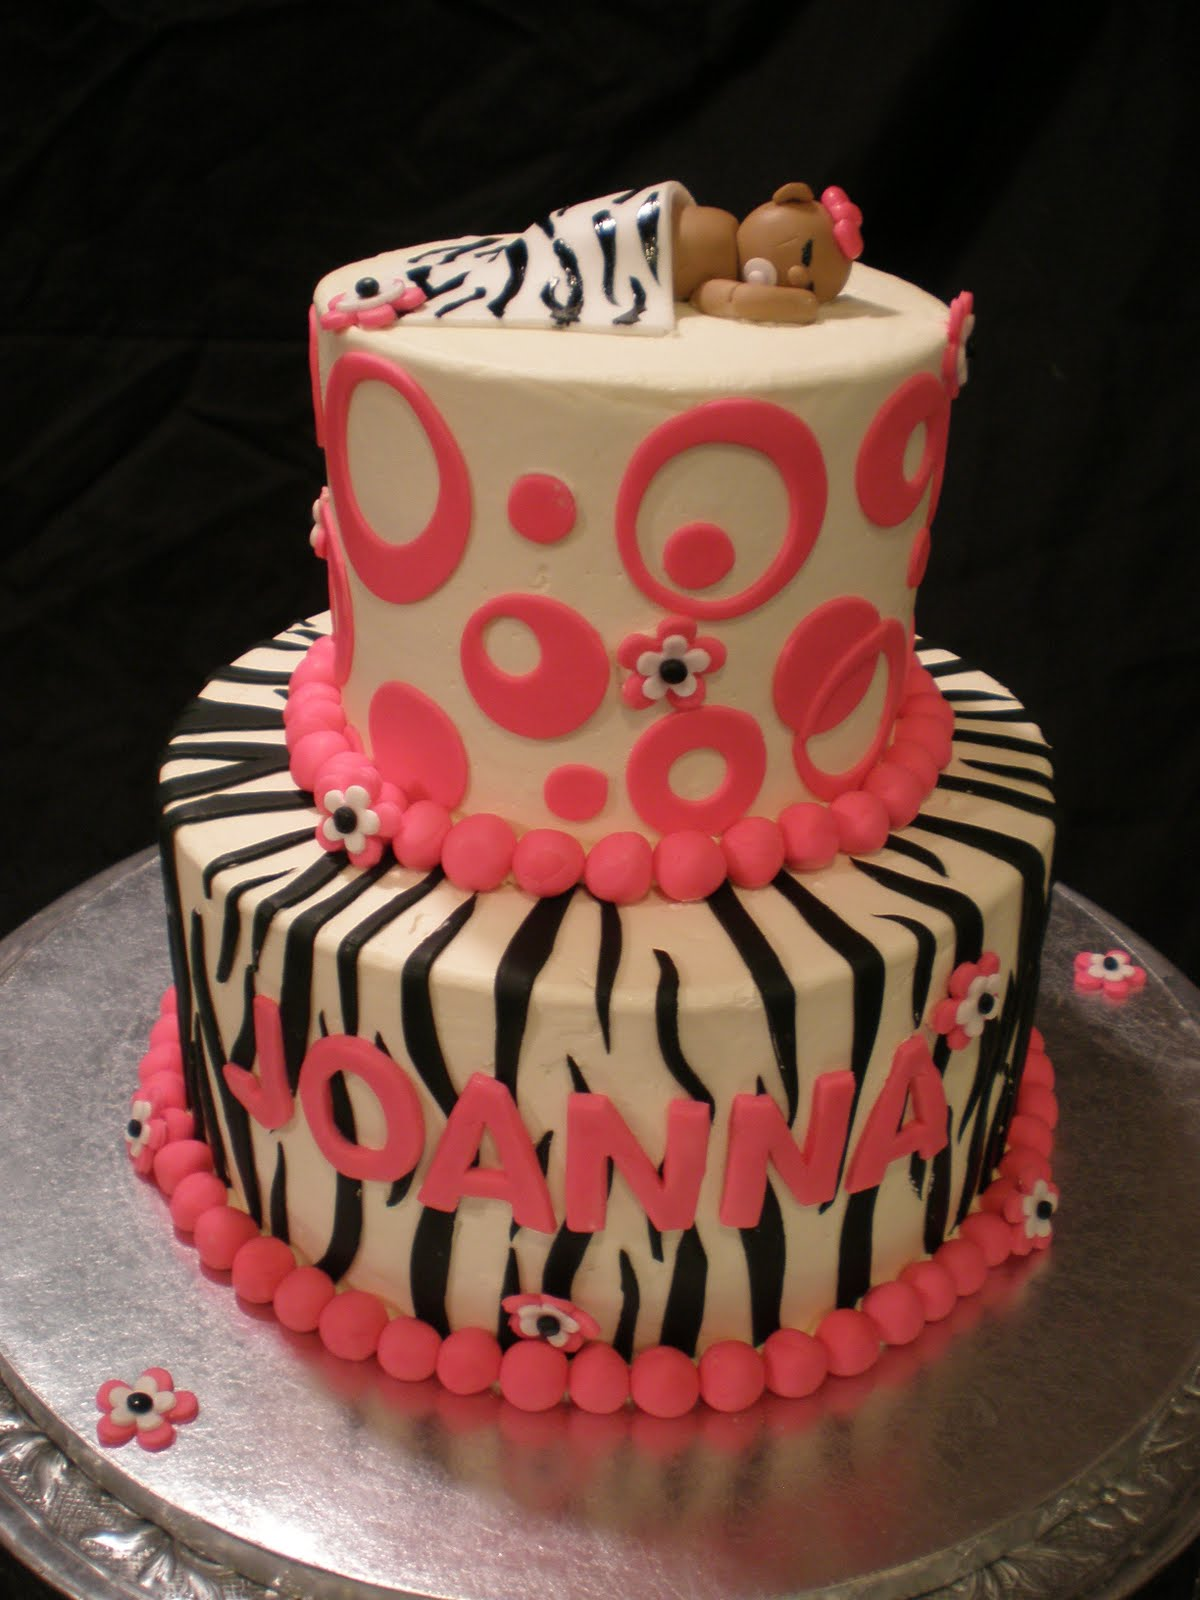 Tier Zebra Baby Shower Cake Designed by: TheSweetTreat.com